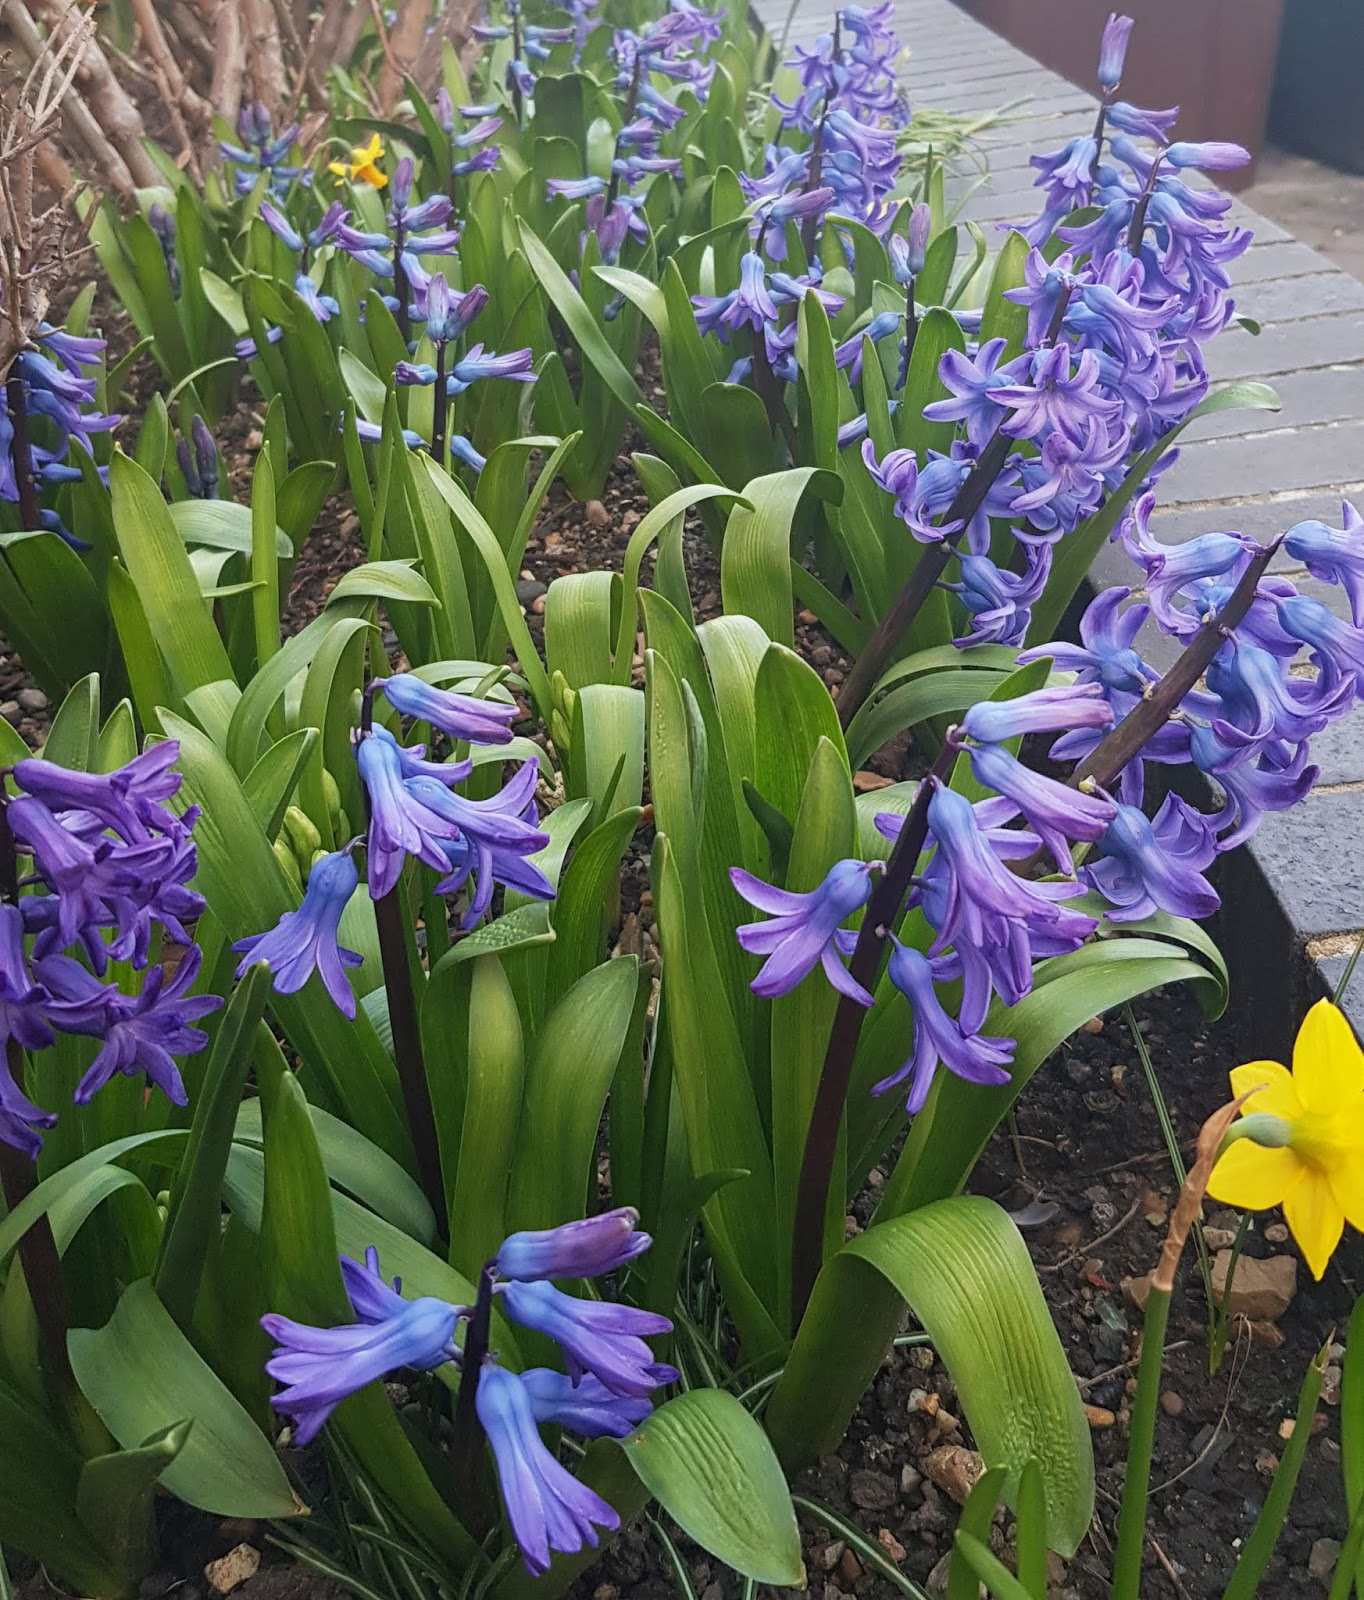 A profusion of blue hyacinths, long established, London February 2020